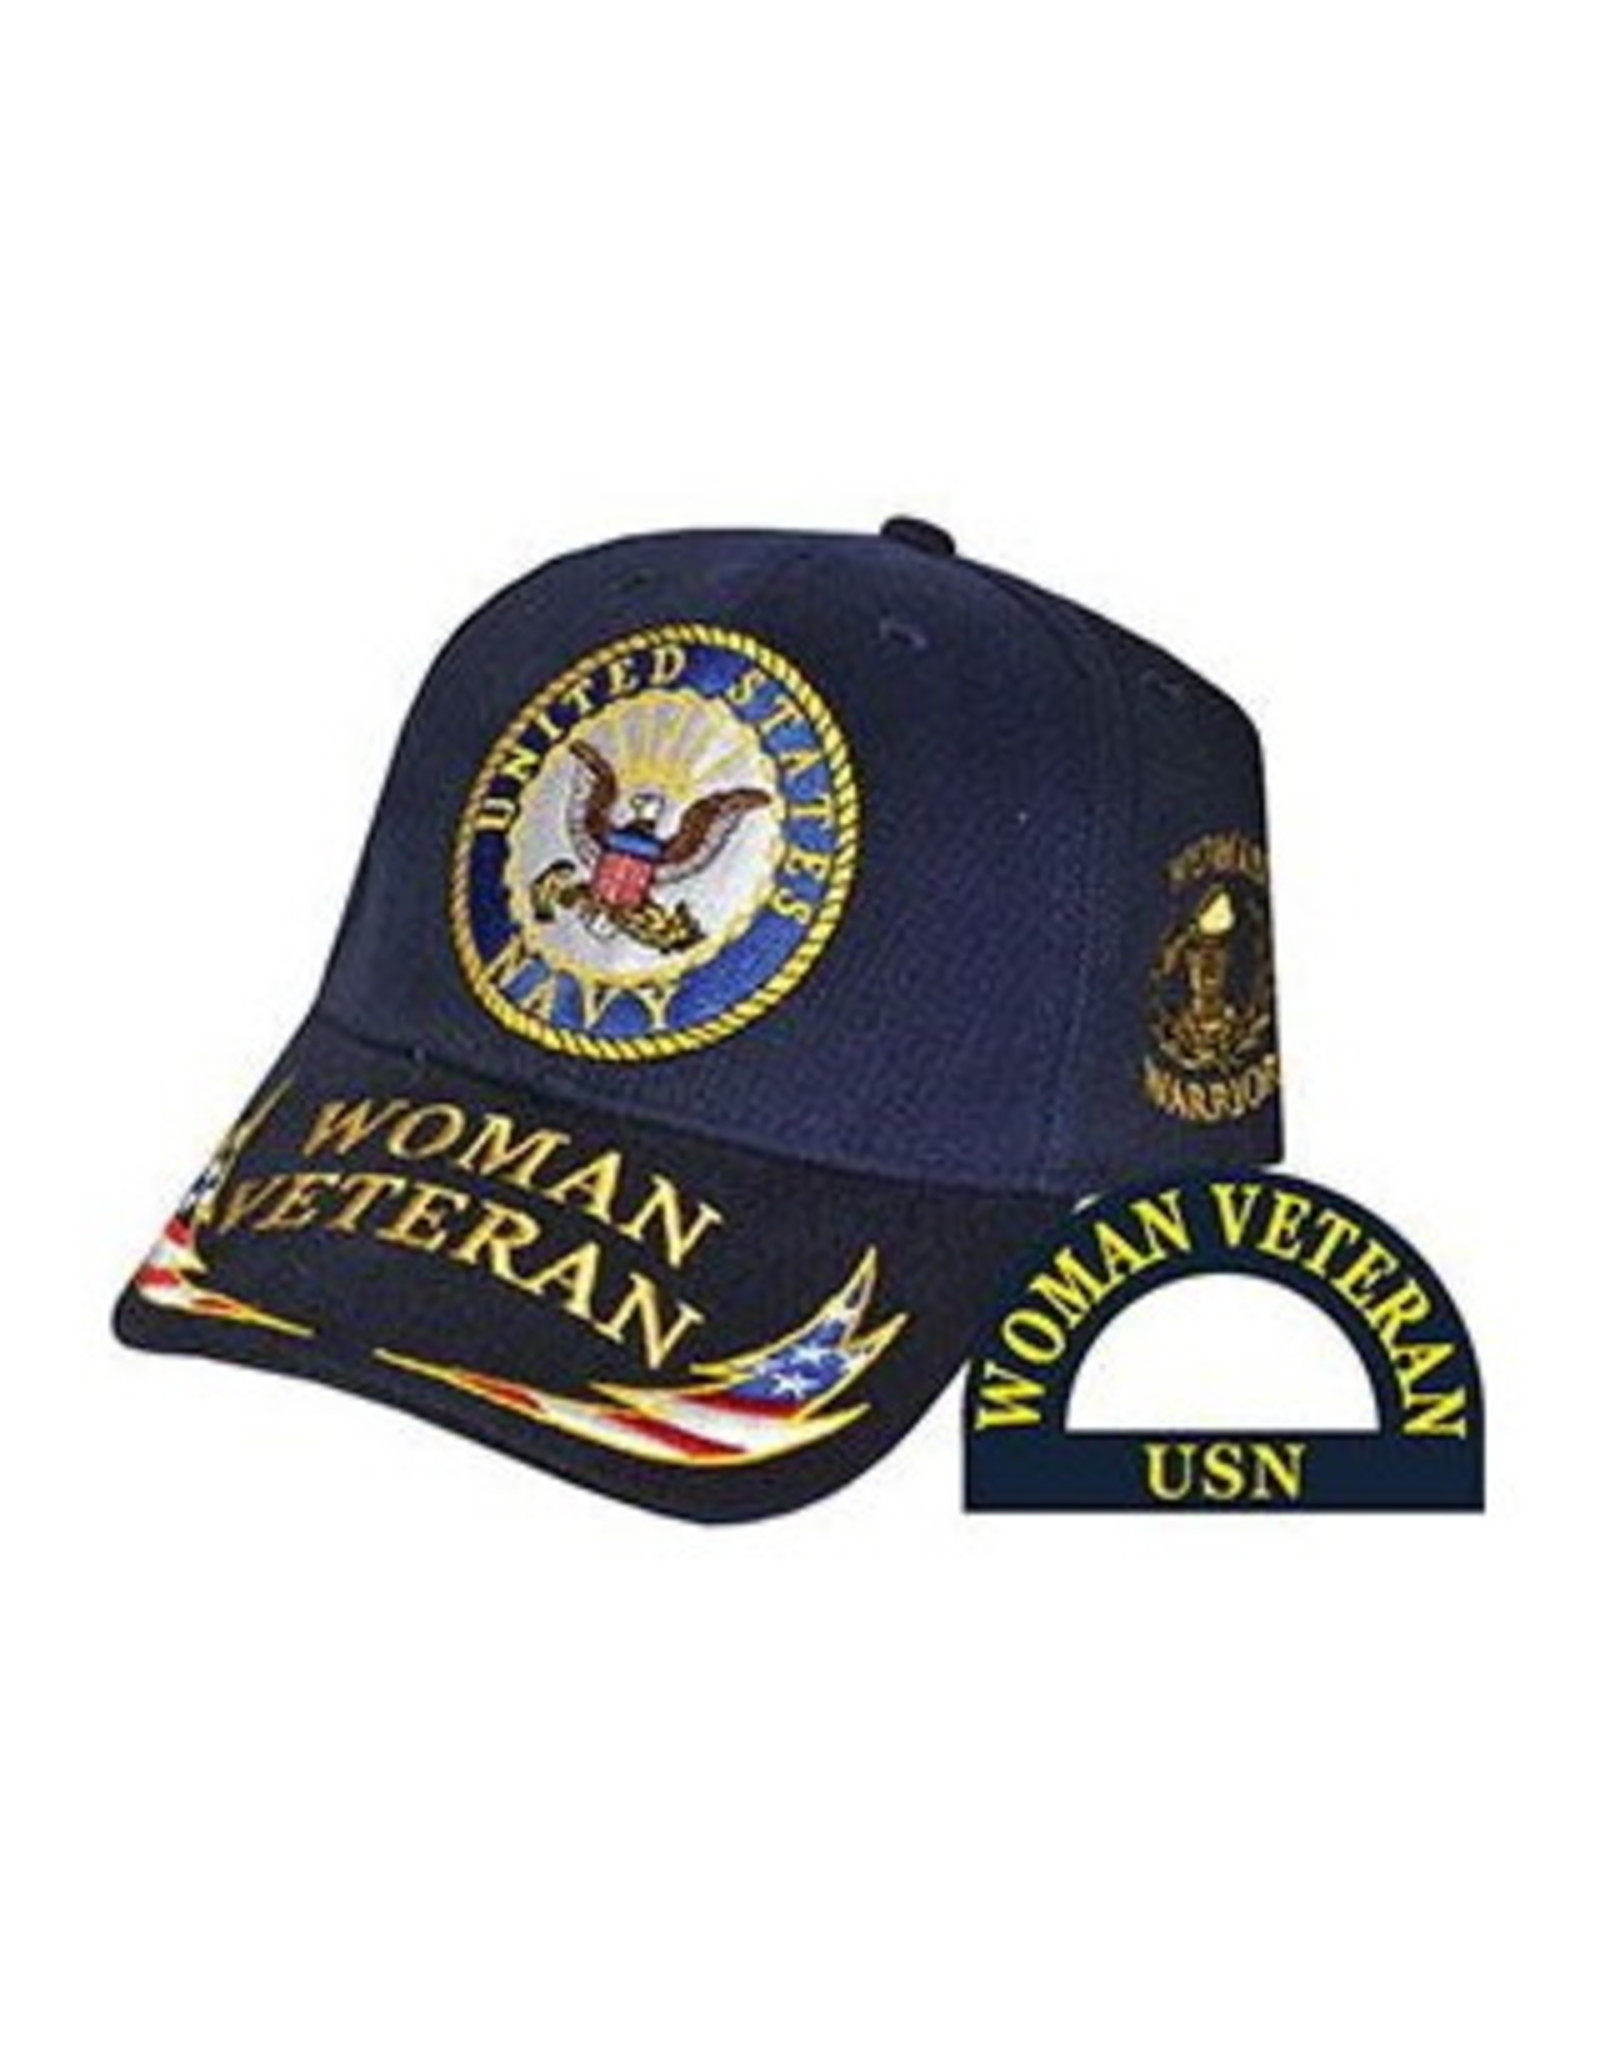 MidMil Navy Woman Veteran Hat with Seal and Woman Veteran/Red White Blue Lightning Bolt on Bill Dark Blue